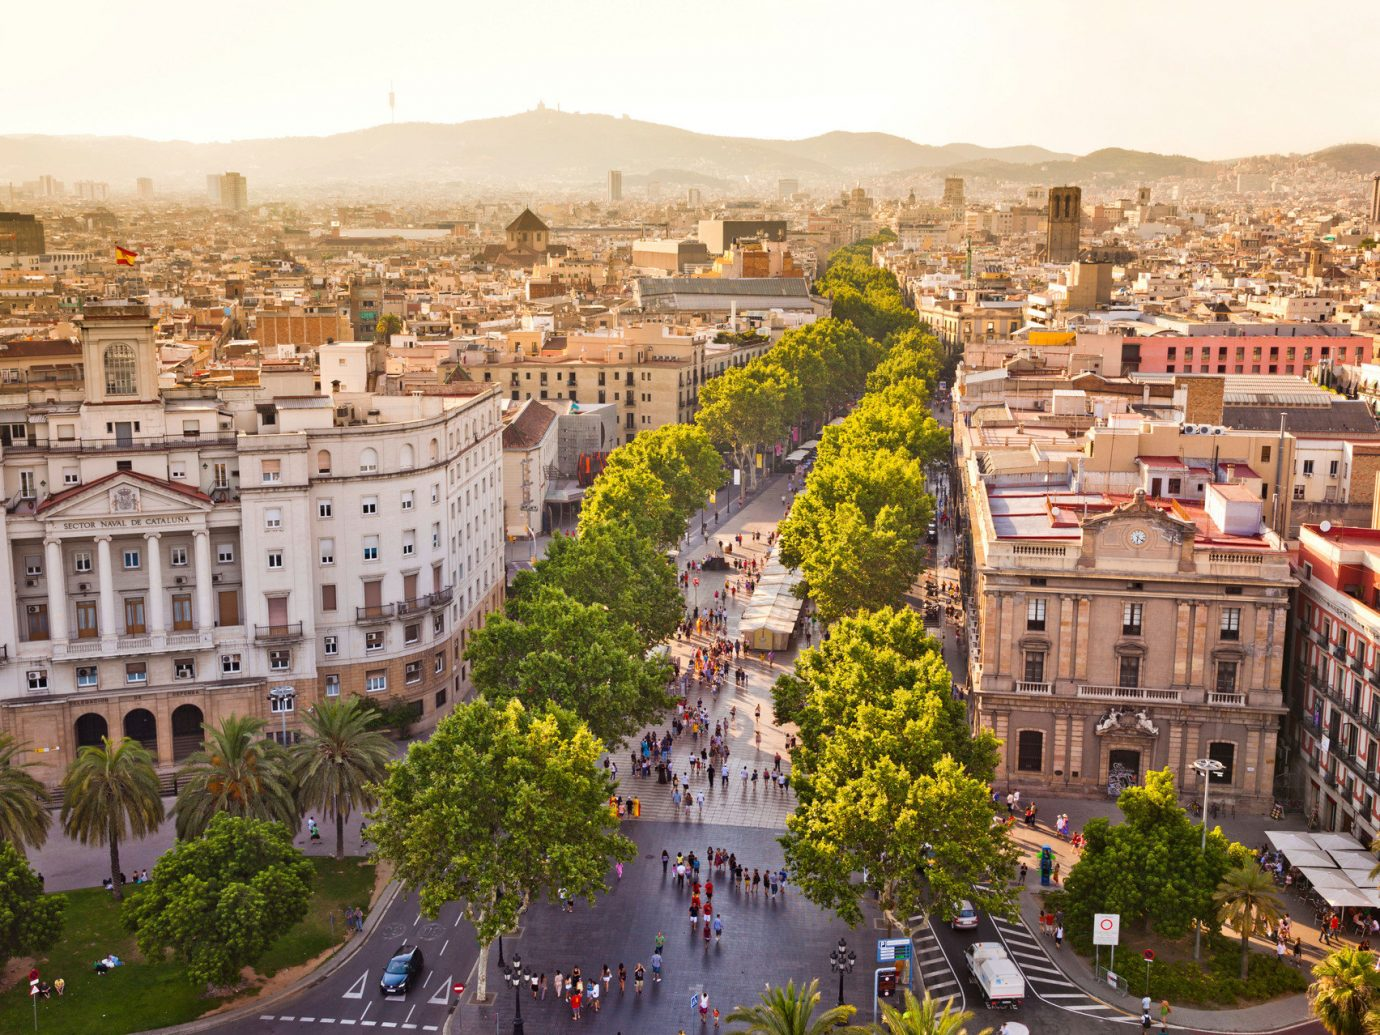 Trip Ideas sky outdoor Town geographical feature landmark cityscape City human settlement neighbourhood urban area plaza town square tourism metropolis ancient rome Downtown aerial photography palace ancient history panorama crowd